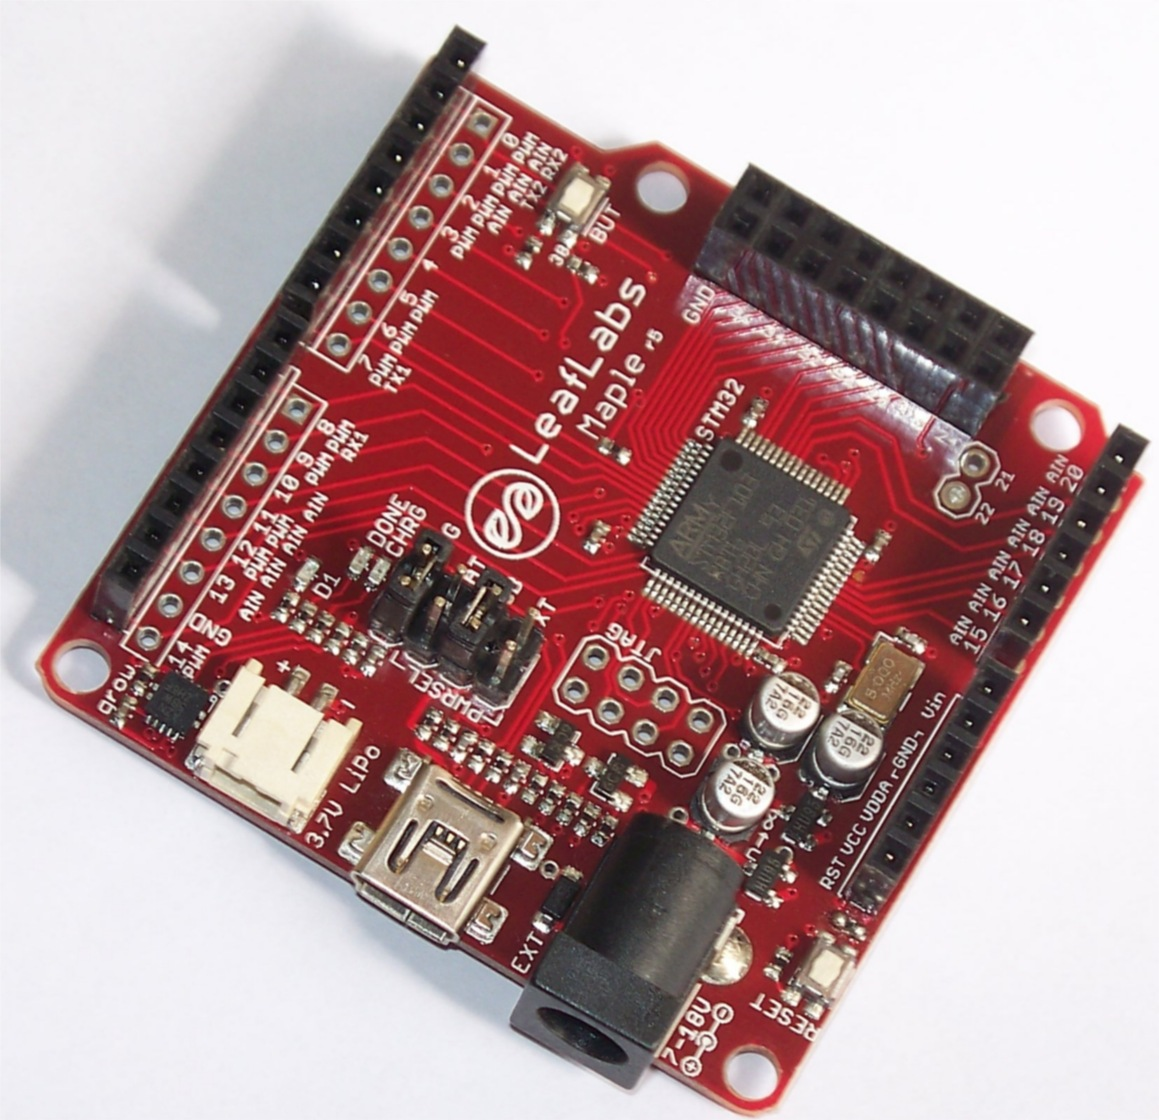 Arm Based Projects Ideas With Series Microcontroller Timer Electronics Proojects Share